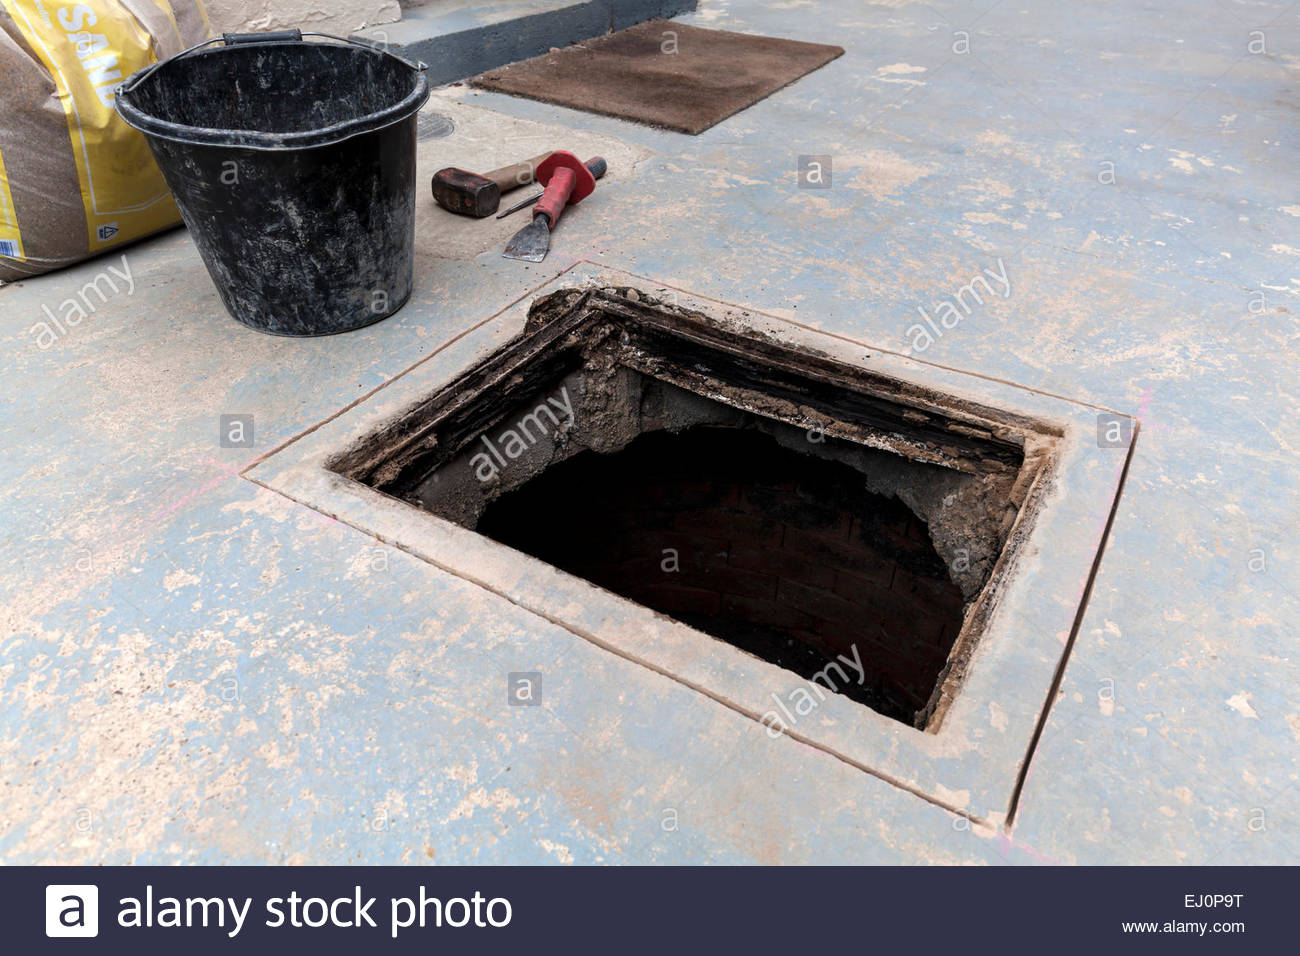 Cutting and replacing manhole cover frame - Stock Image